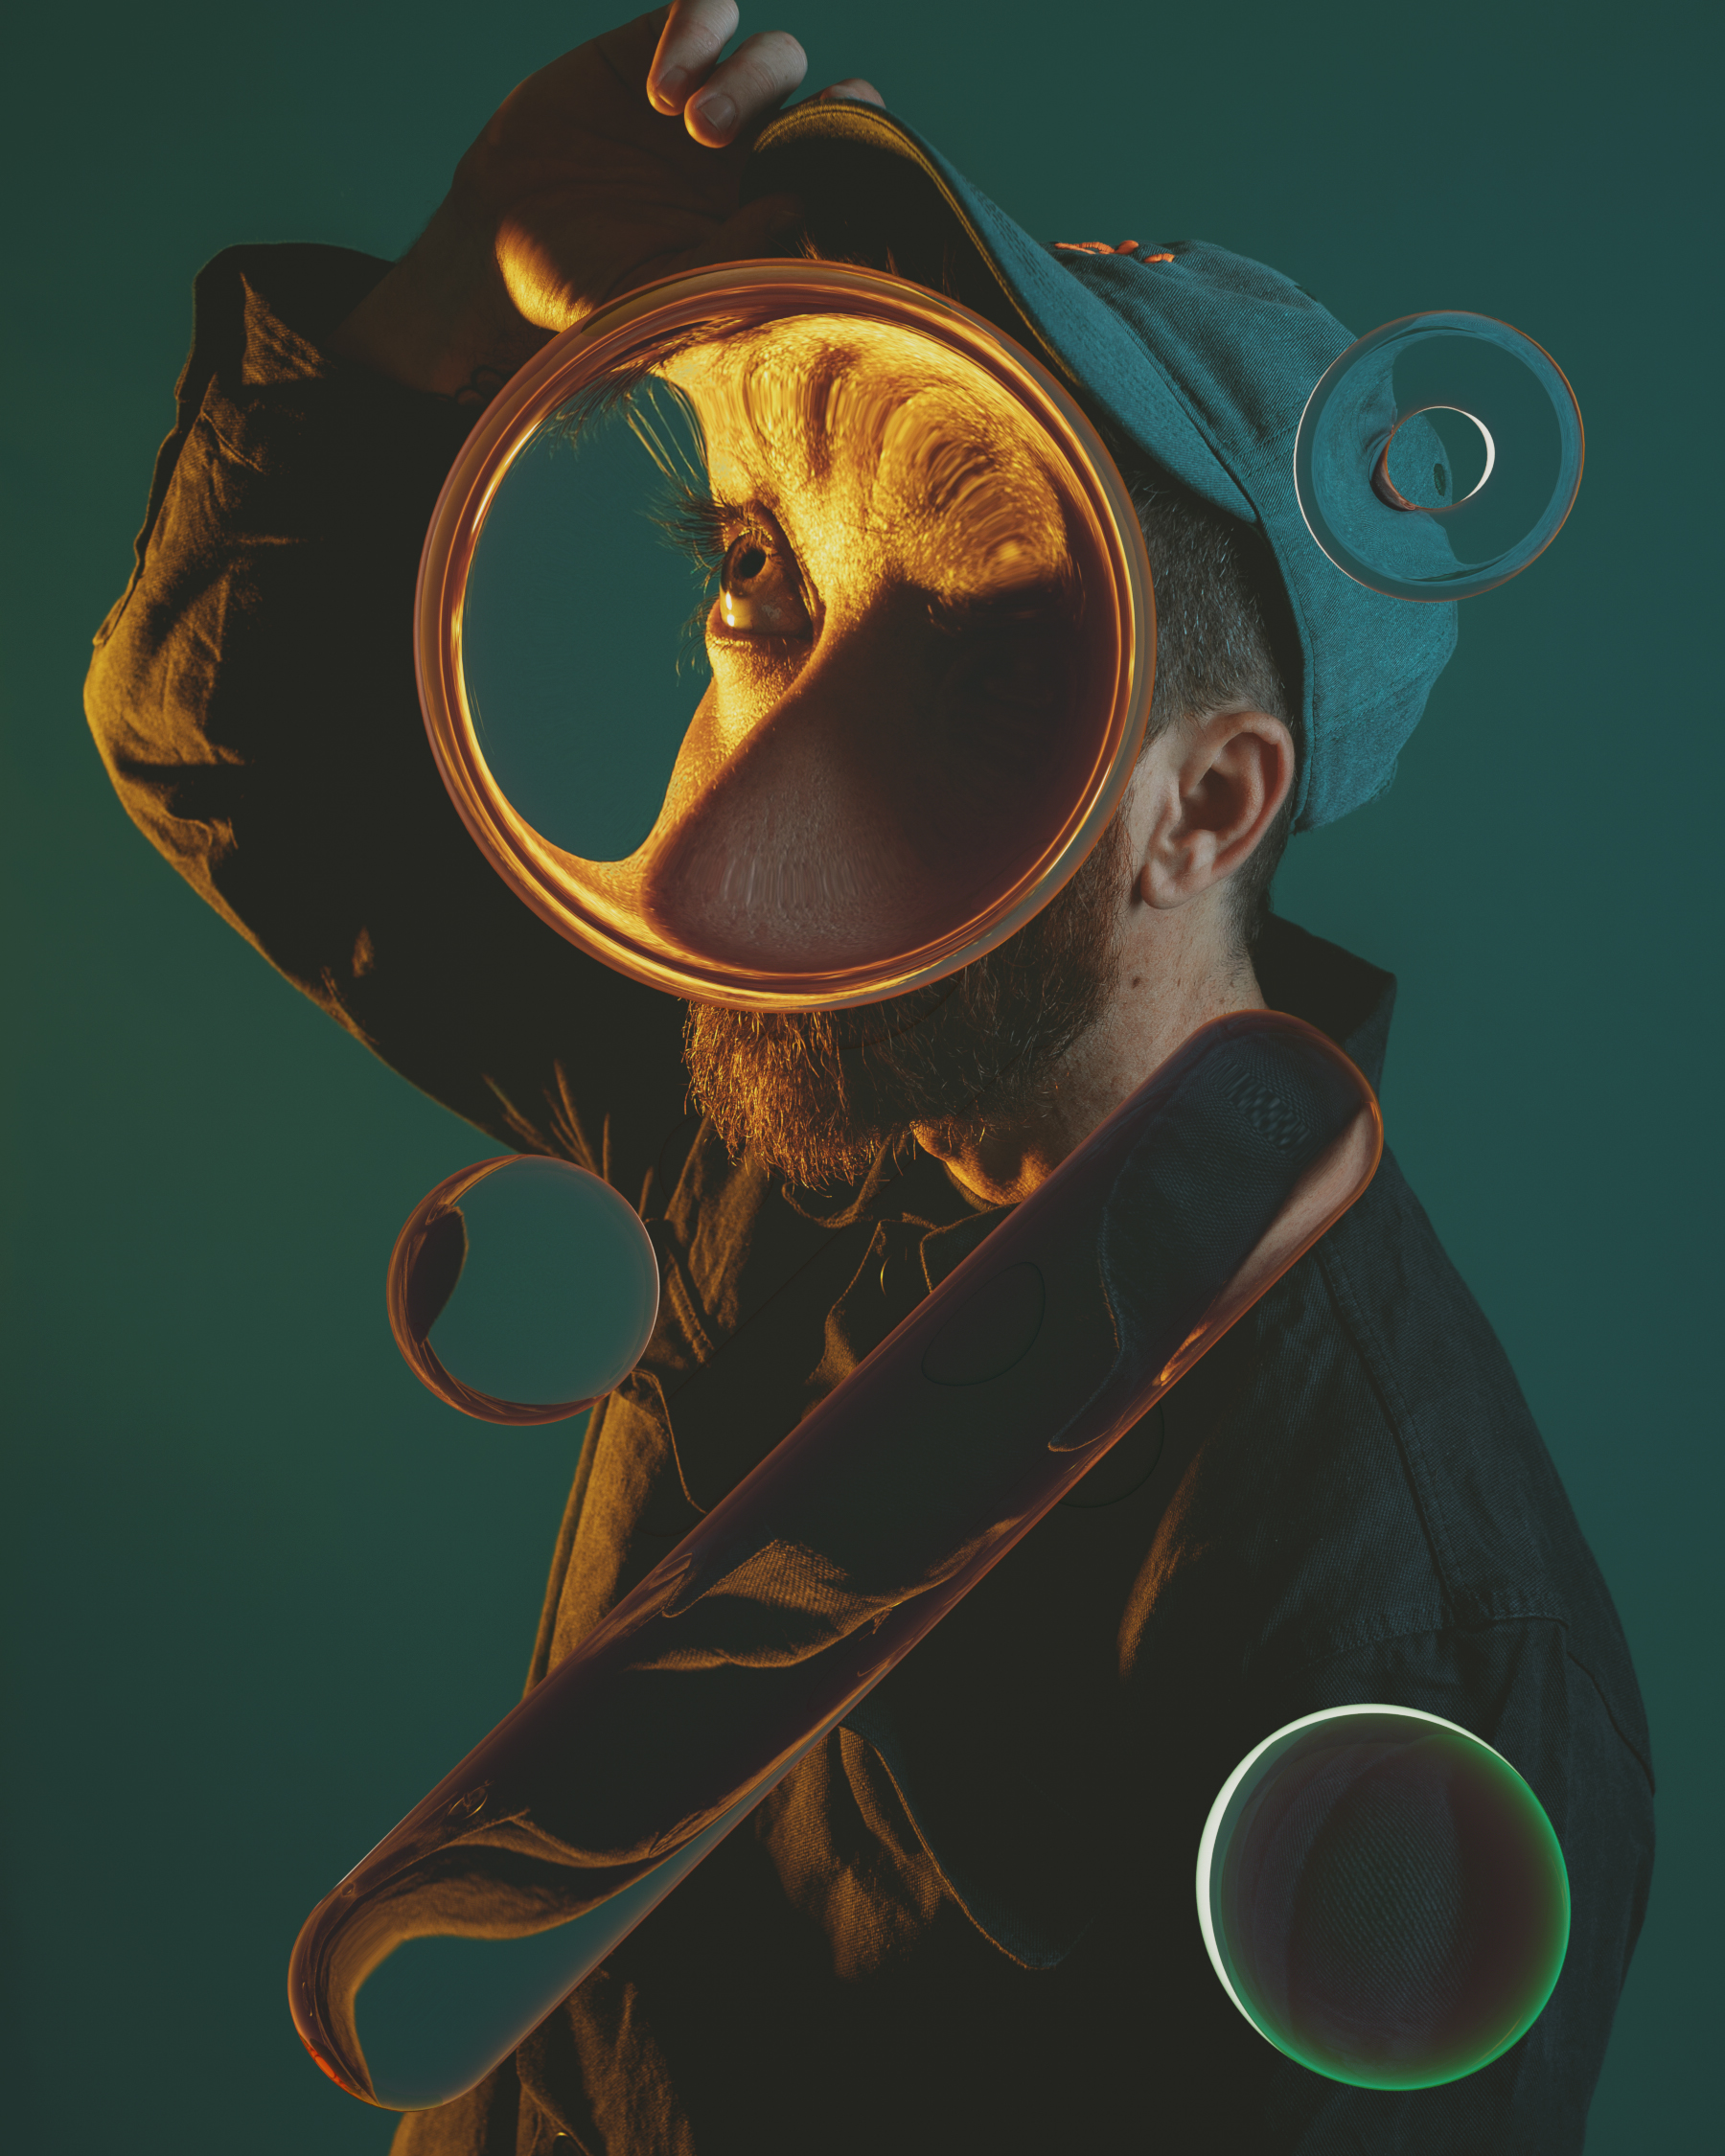 Fun Self-Portraits That Play with Lenses and Refraction